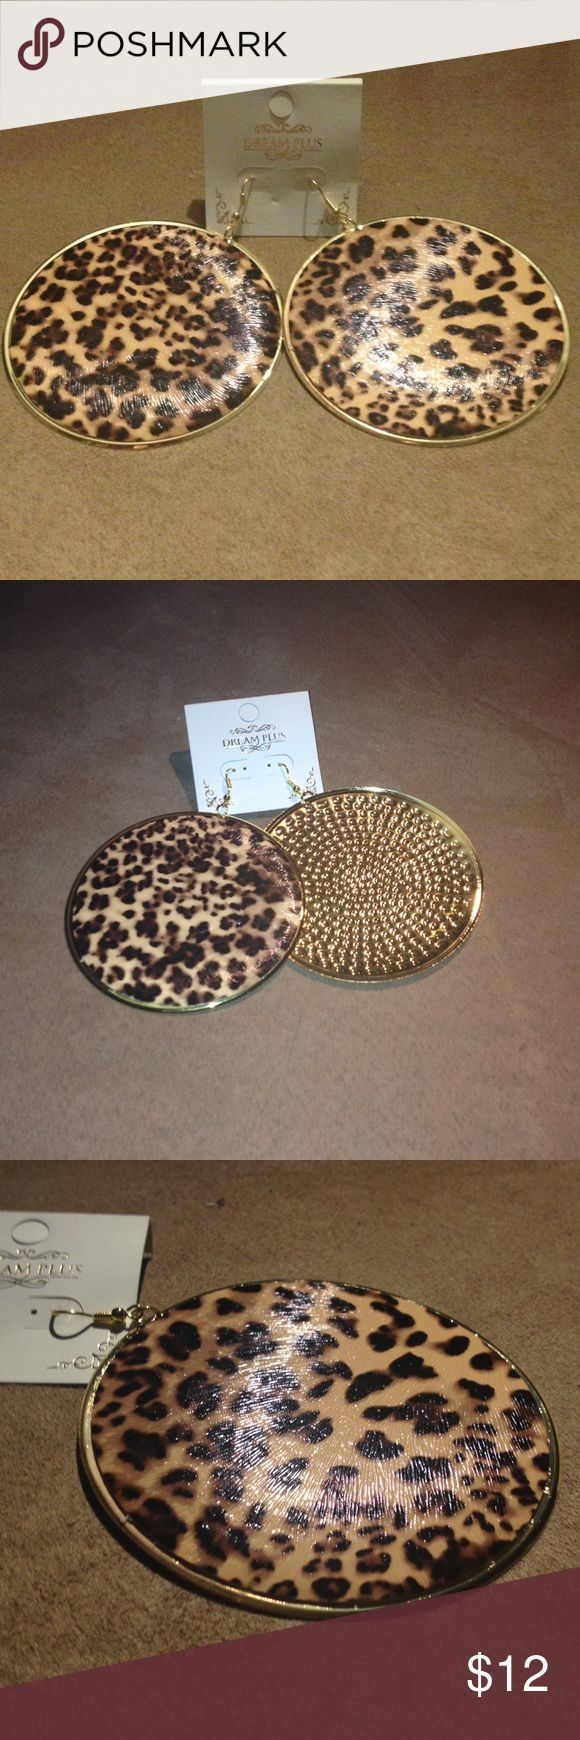 👯Exotic Animal Print Earrings👯 These are absolutely amazing! NWT!! Perfect accessory. Gold with textured animal print. They demand attention. Jewelry Earrings